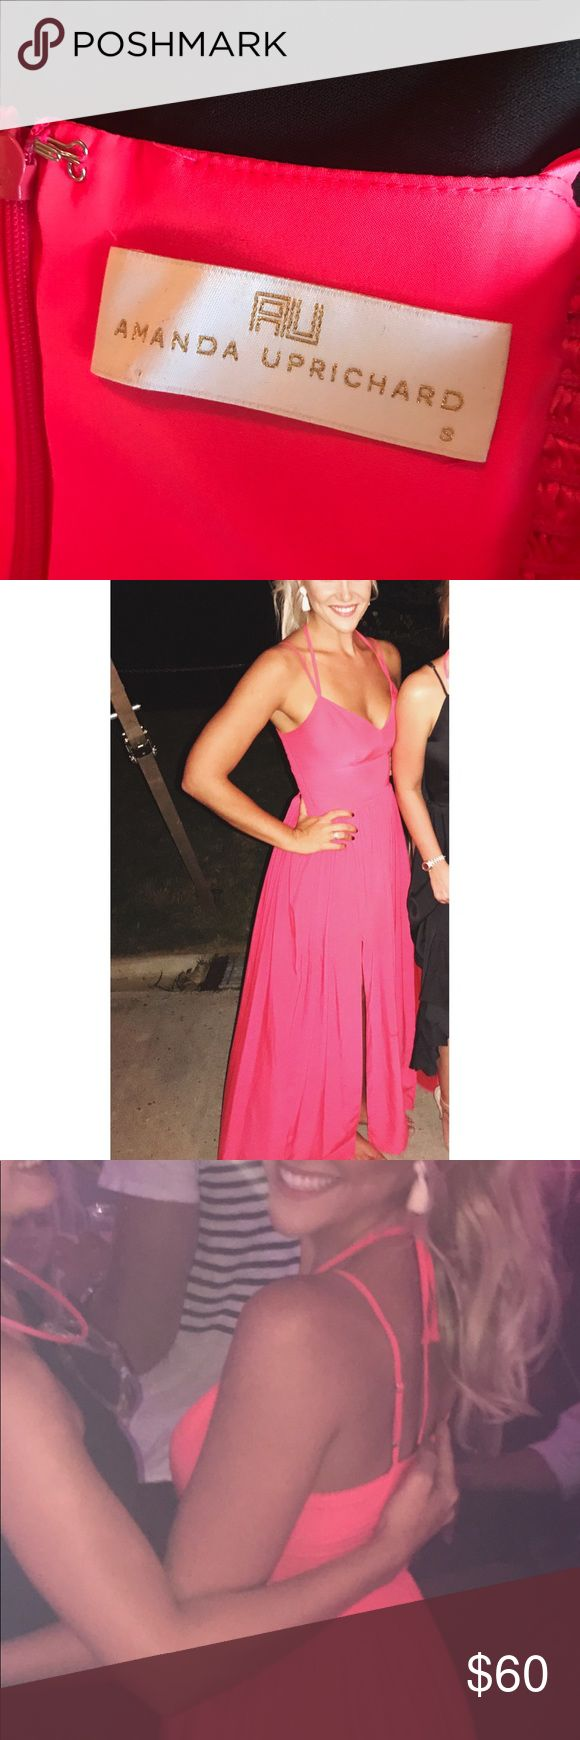 Amanda Uprichard Maxi Dress 💋 This dress is killer! I danced a little too hard in it and torn one of the slits a little deeper (as shown in pic) but it's not noticeable when your wearing it. Needs to be dry cleaned 💘 Amanda Uprichard Dresses Maxi